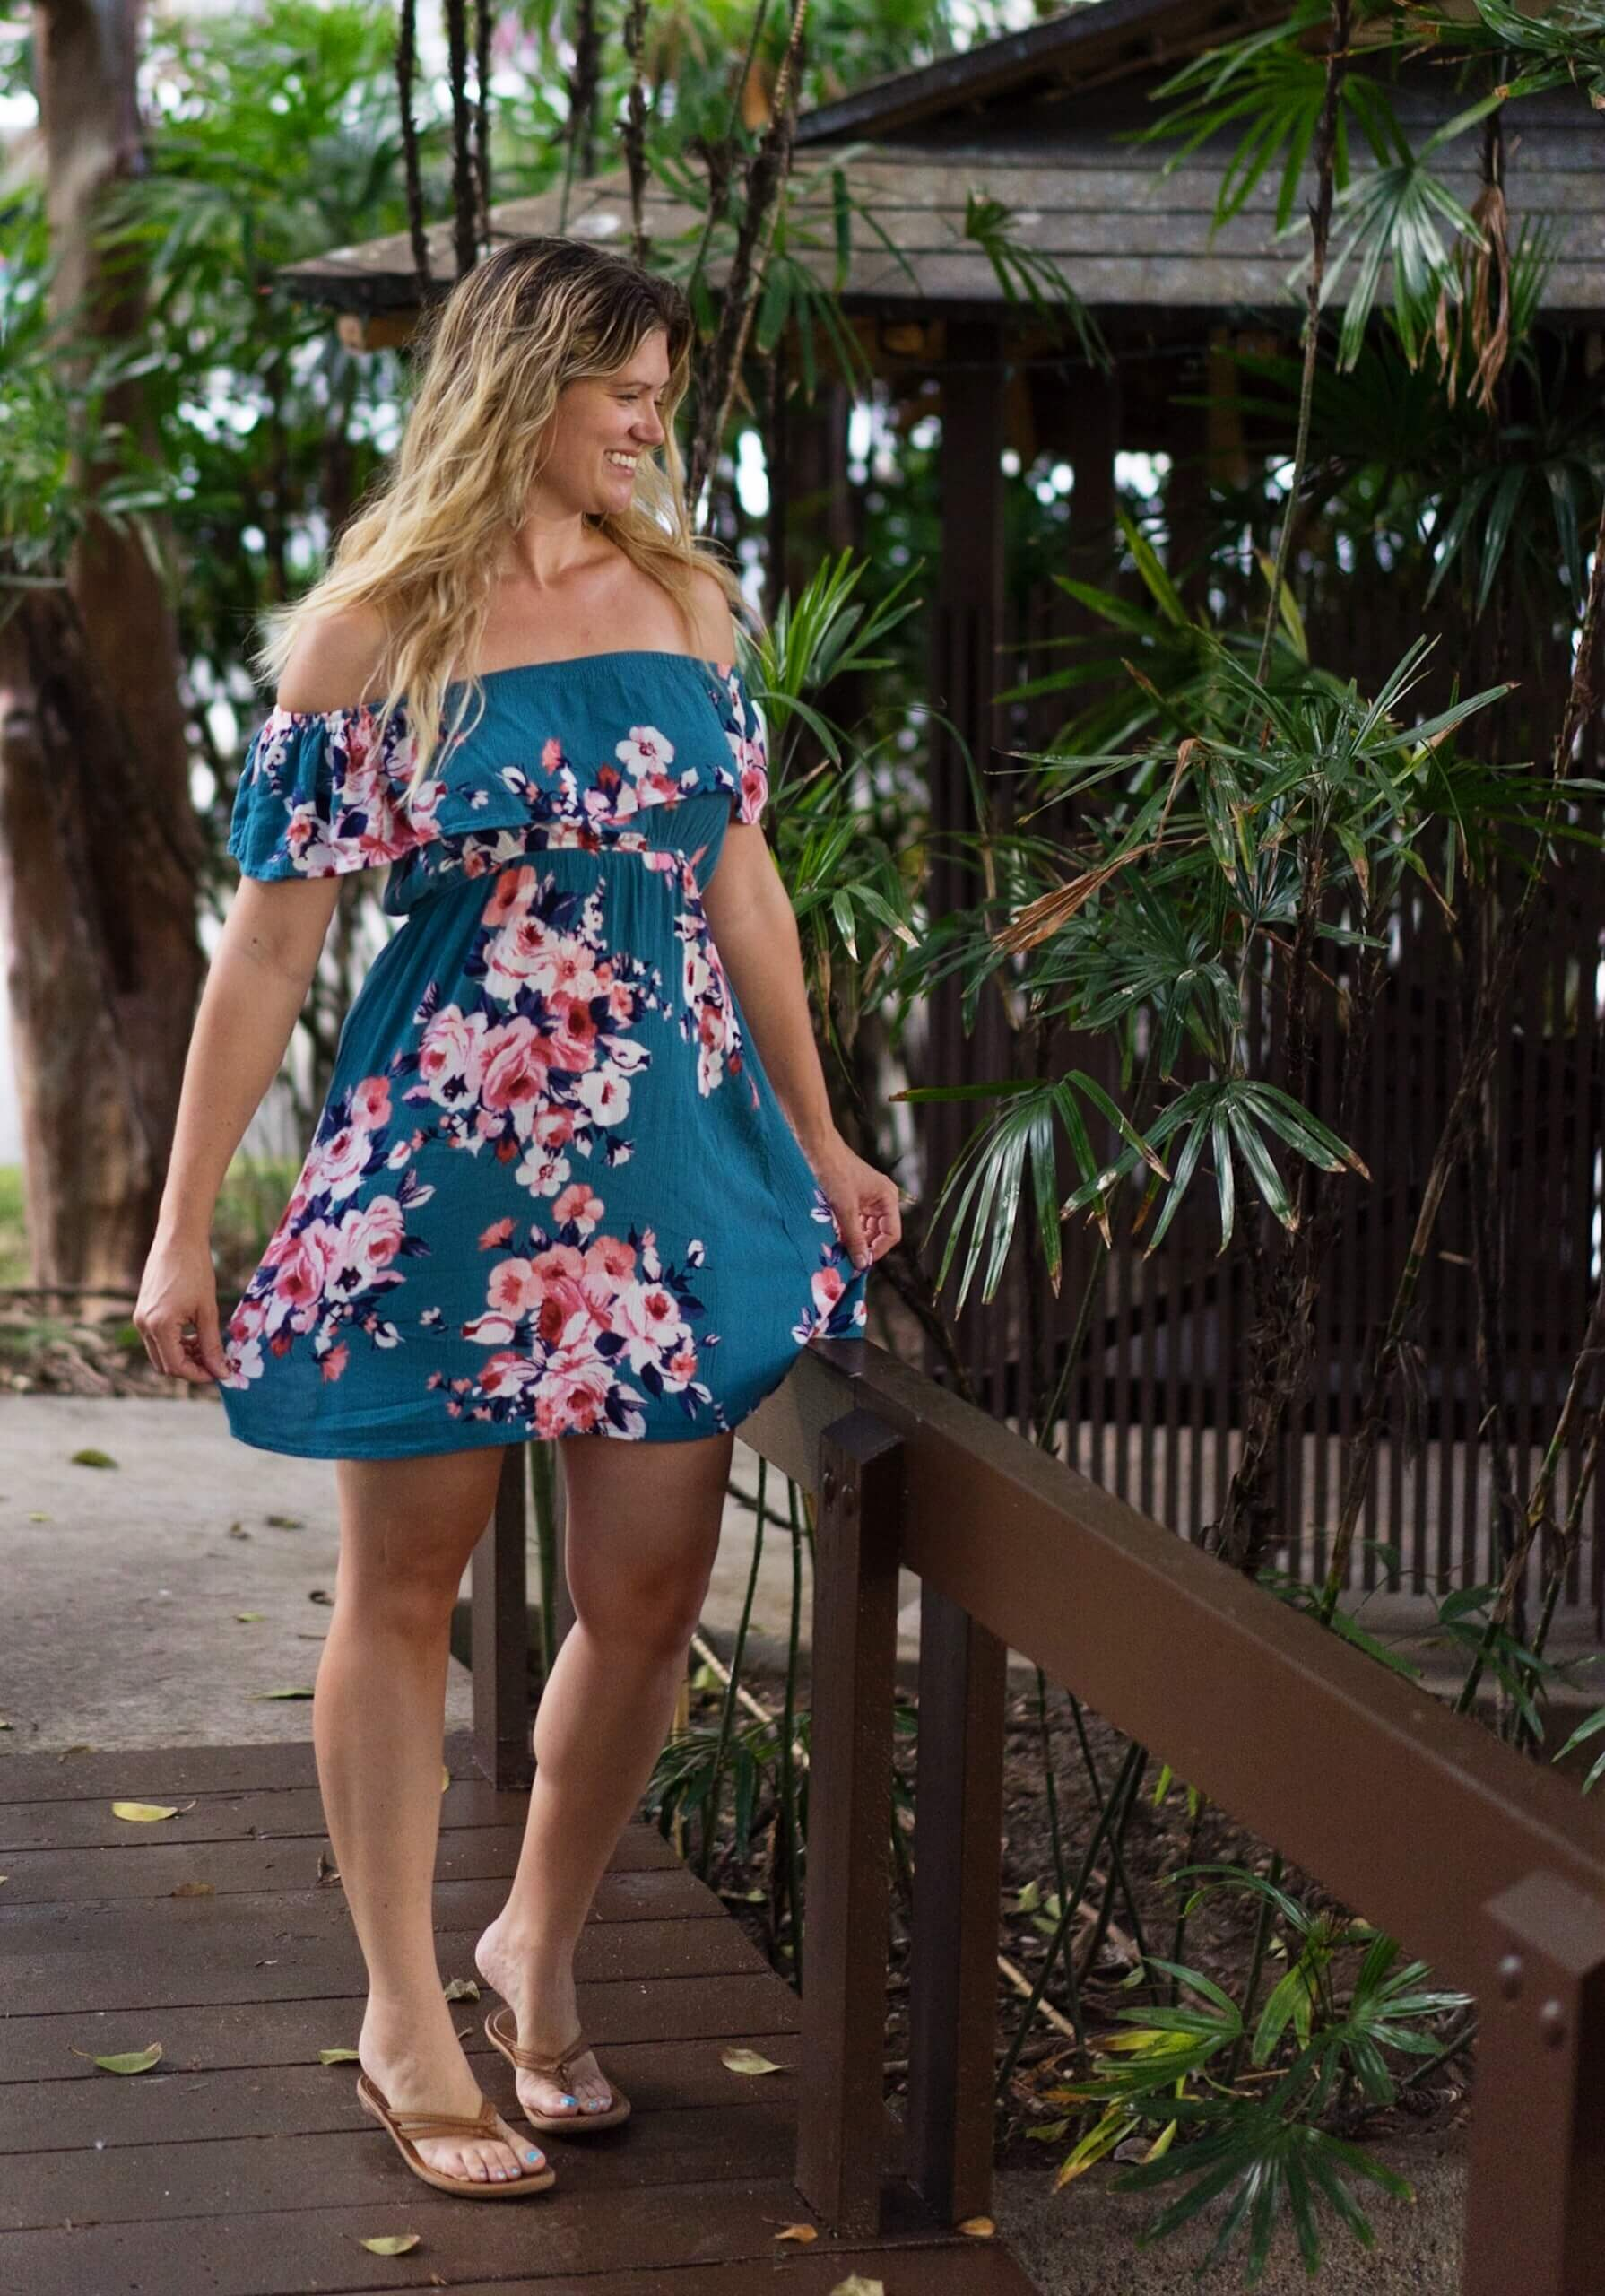 woman in a floral dress